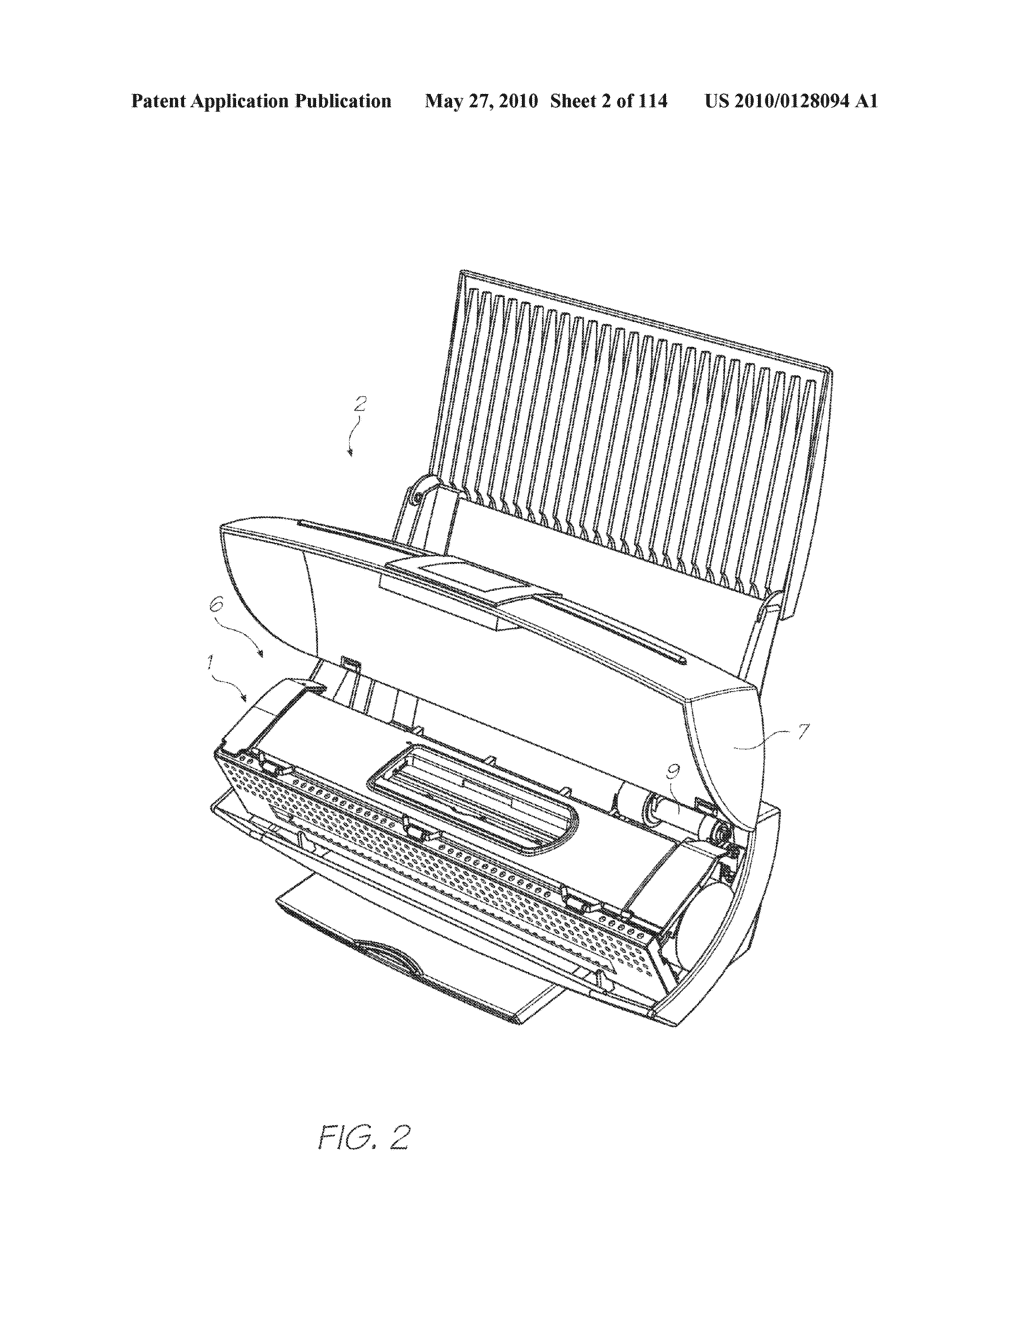 Print Engine With A Refillable Printer Cartridge And Ink Refill Port - diagram, schematic, and image 03